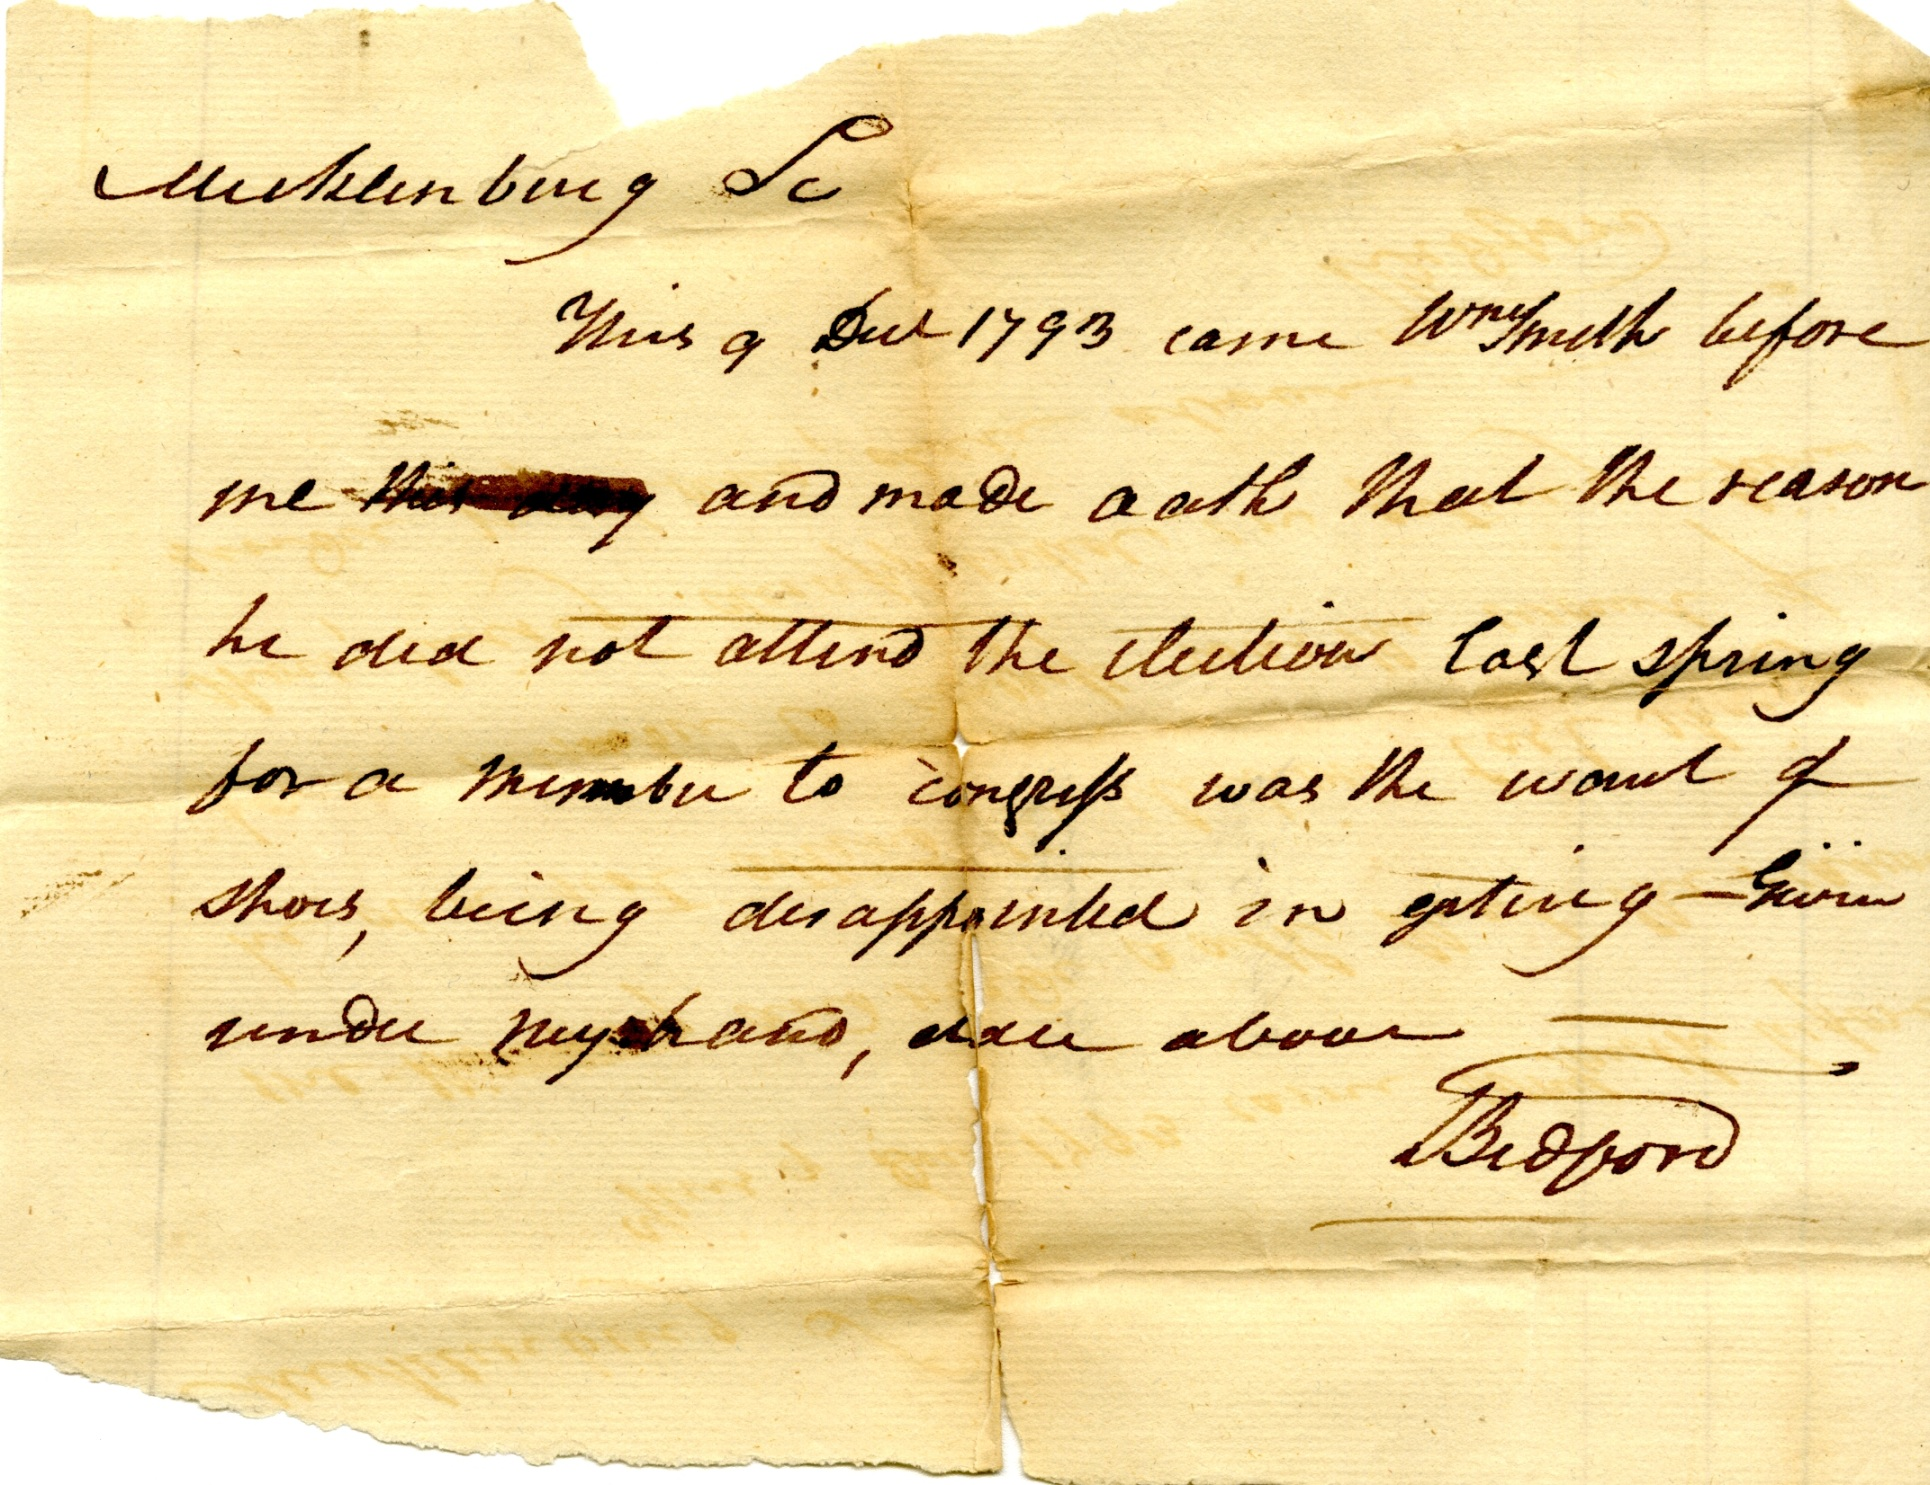 What's Your Excuse? : 1793 Mecklenburg County Election Excuses